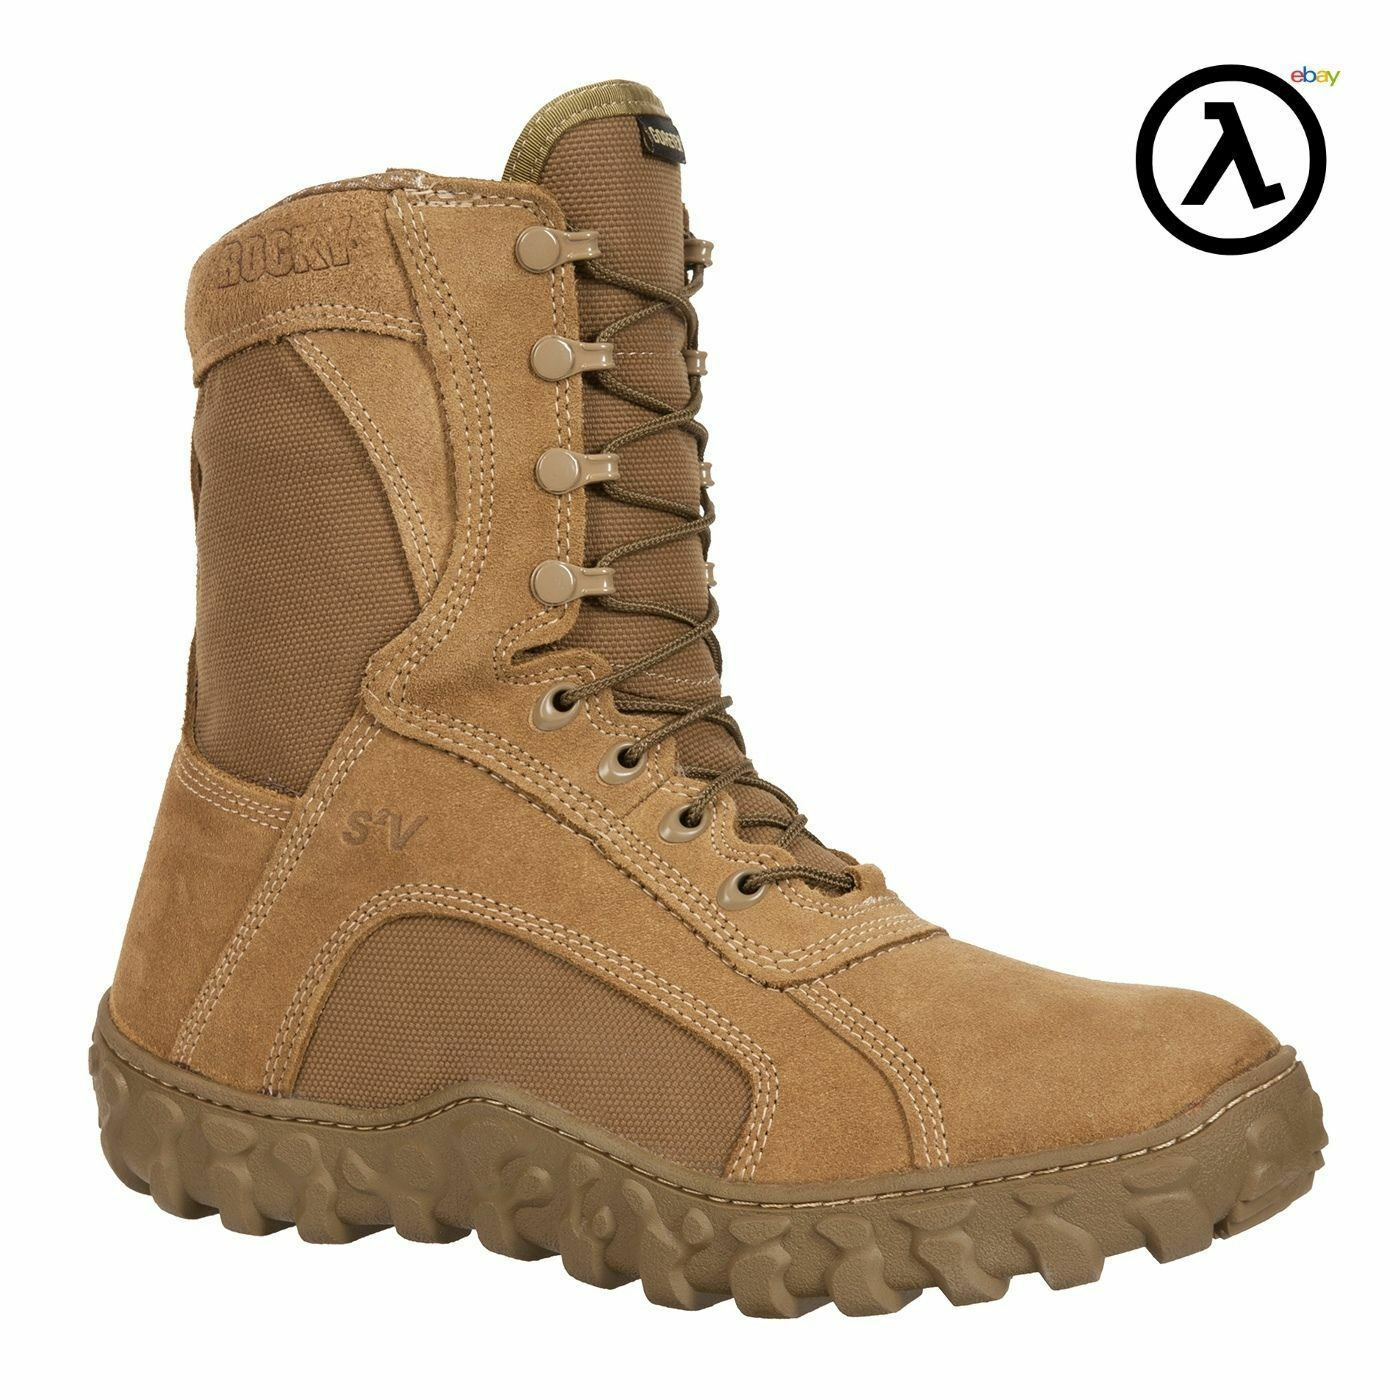 ROCKY S2V GORE-TEX WATERPROOF 400G INSULATED TACTICAL stivali FQ00104-1 ALL DimensioneS